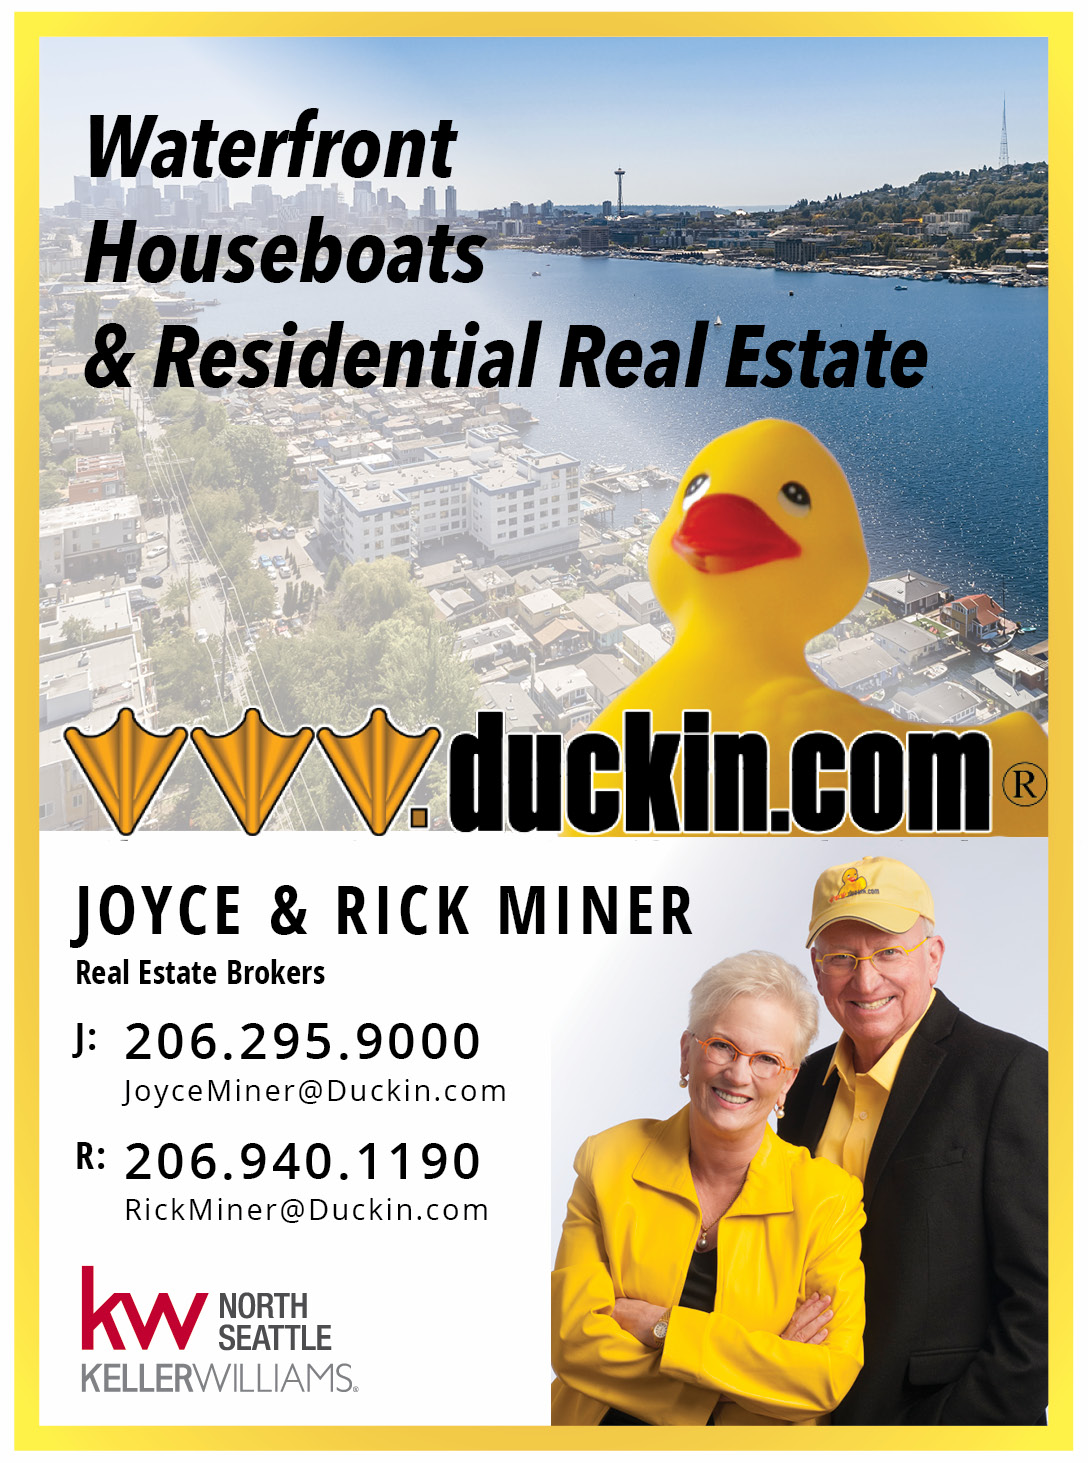 Rick and Joyce Miner Real Estate Brokers